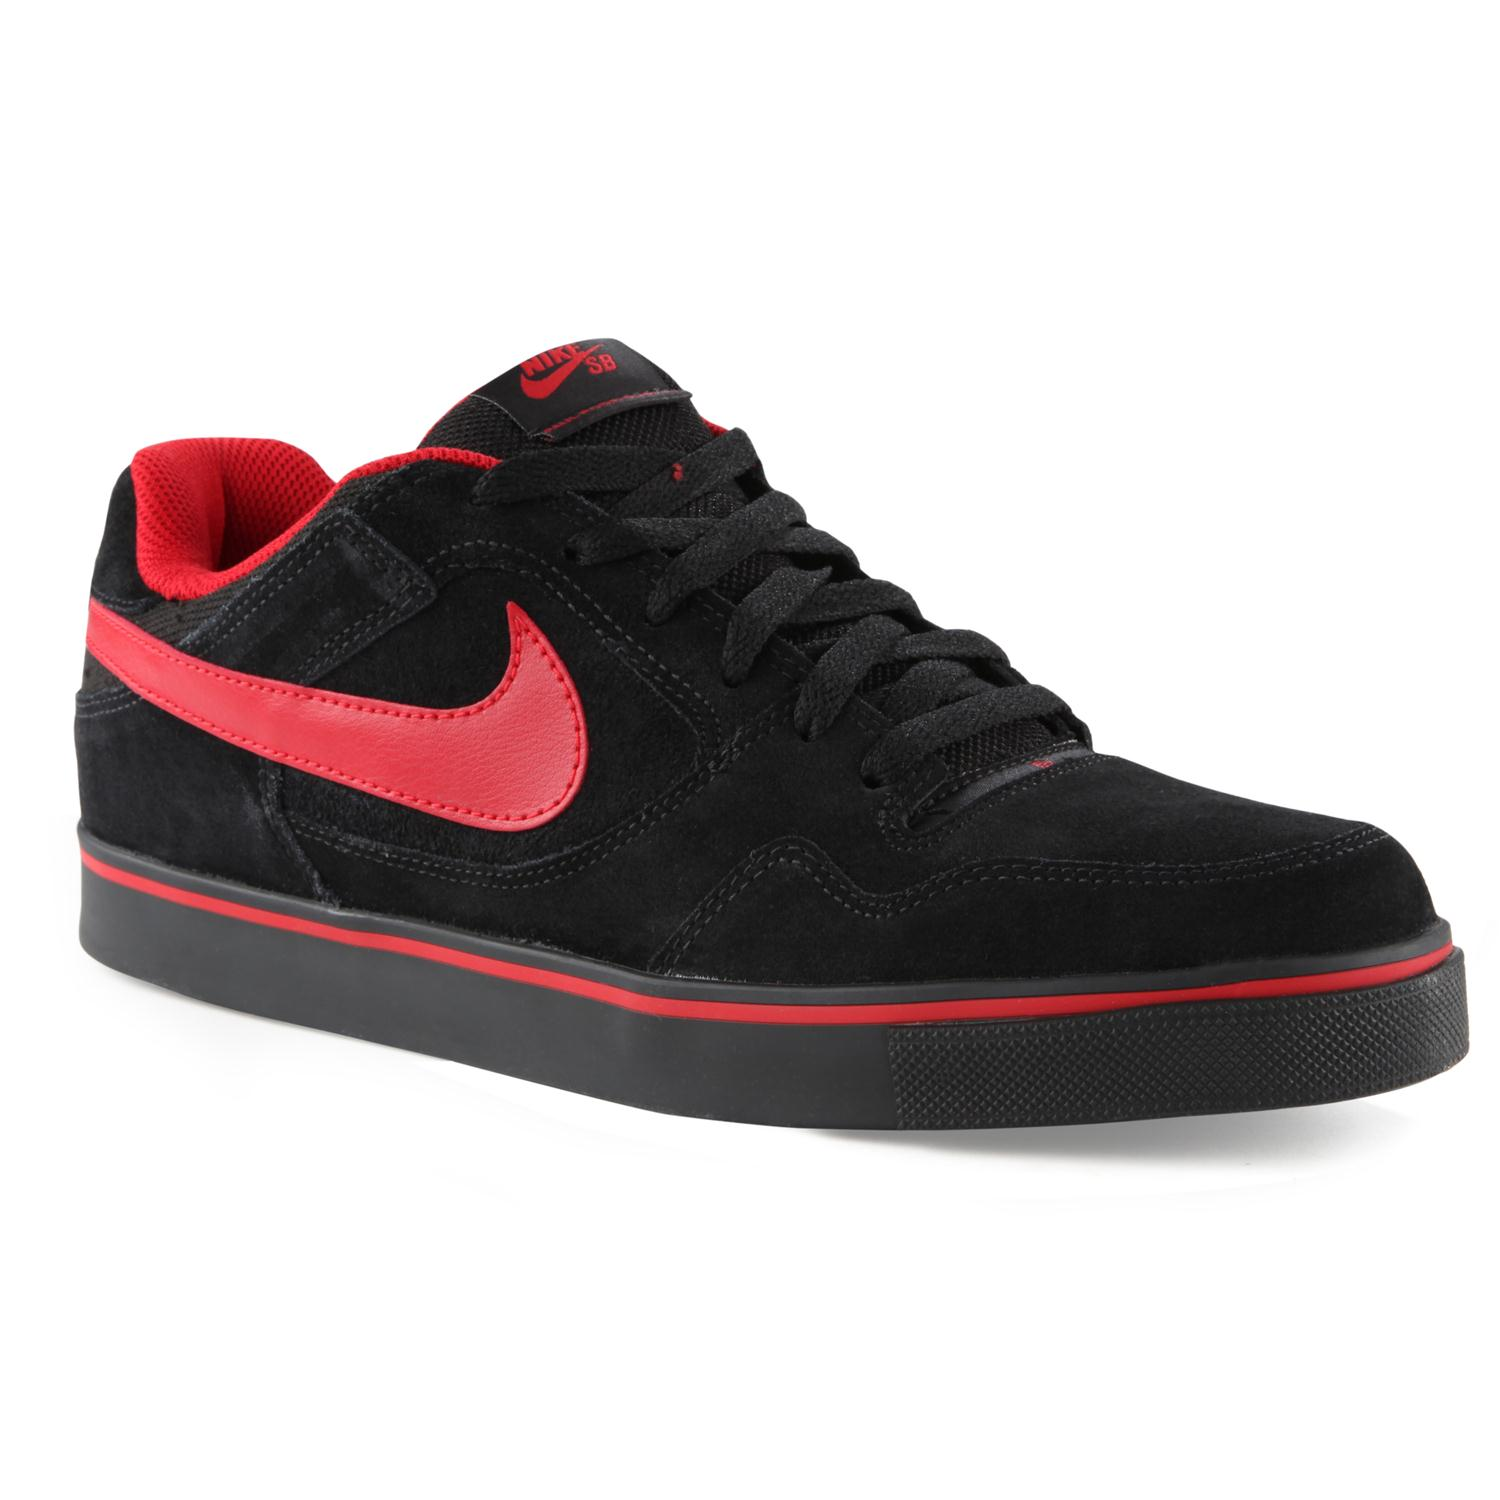 be0046a46a79 release date nike sb paul rodriguez 5 skate shoes 6bc13 9ee77